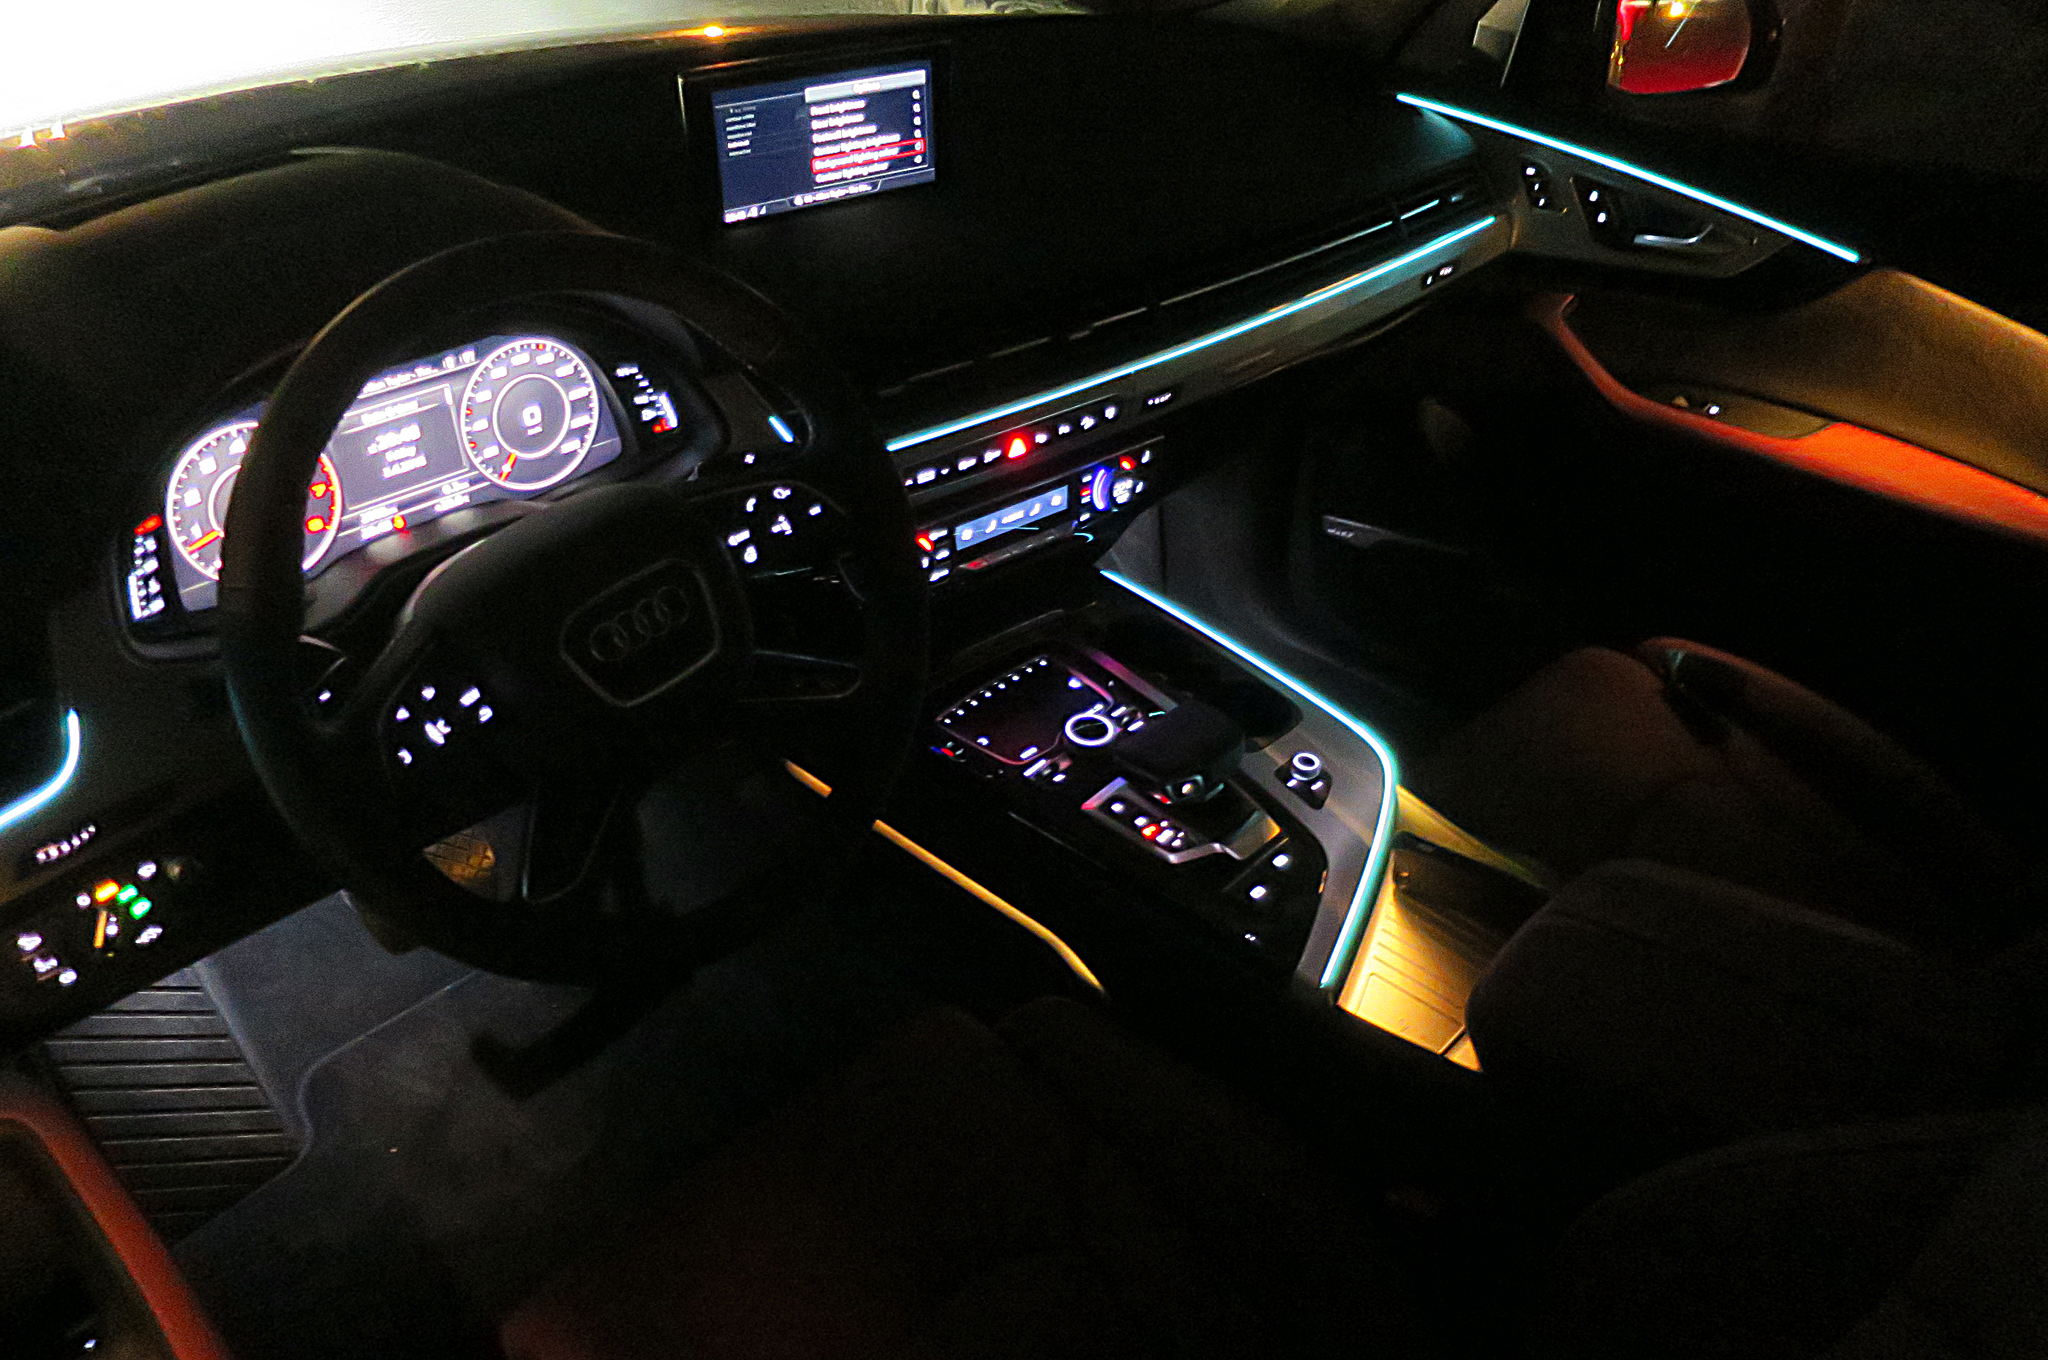 Crisp lines of ambient lighting accent the cockpit, and the color of these lines and of the gentle flood lighting can be set independently. (I've selected a Christmassy light green for the lines and red for the floods.)